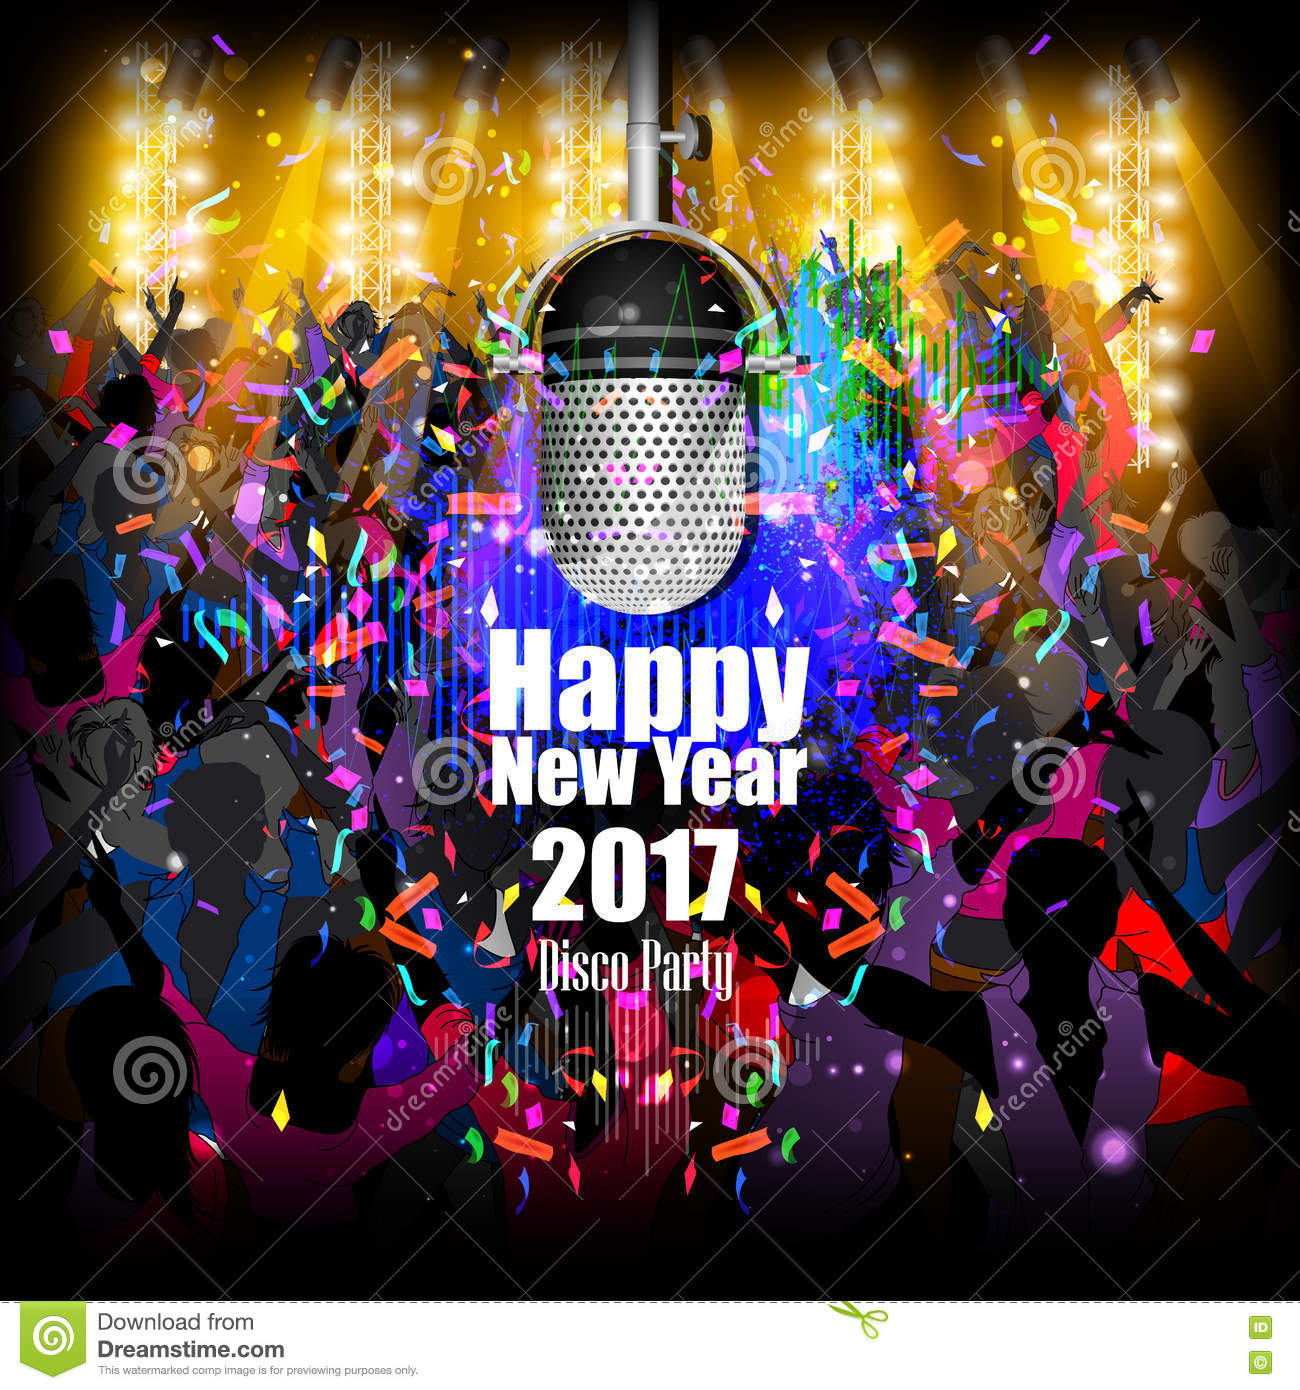 Happy New Year 2017 Party Celebration Poster Stock Vector ...